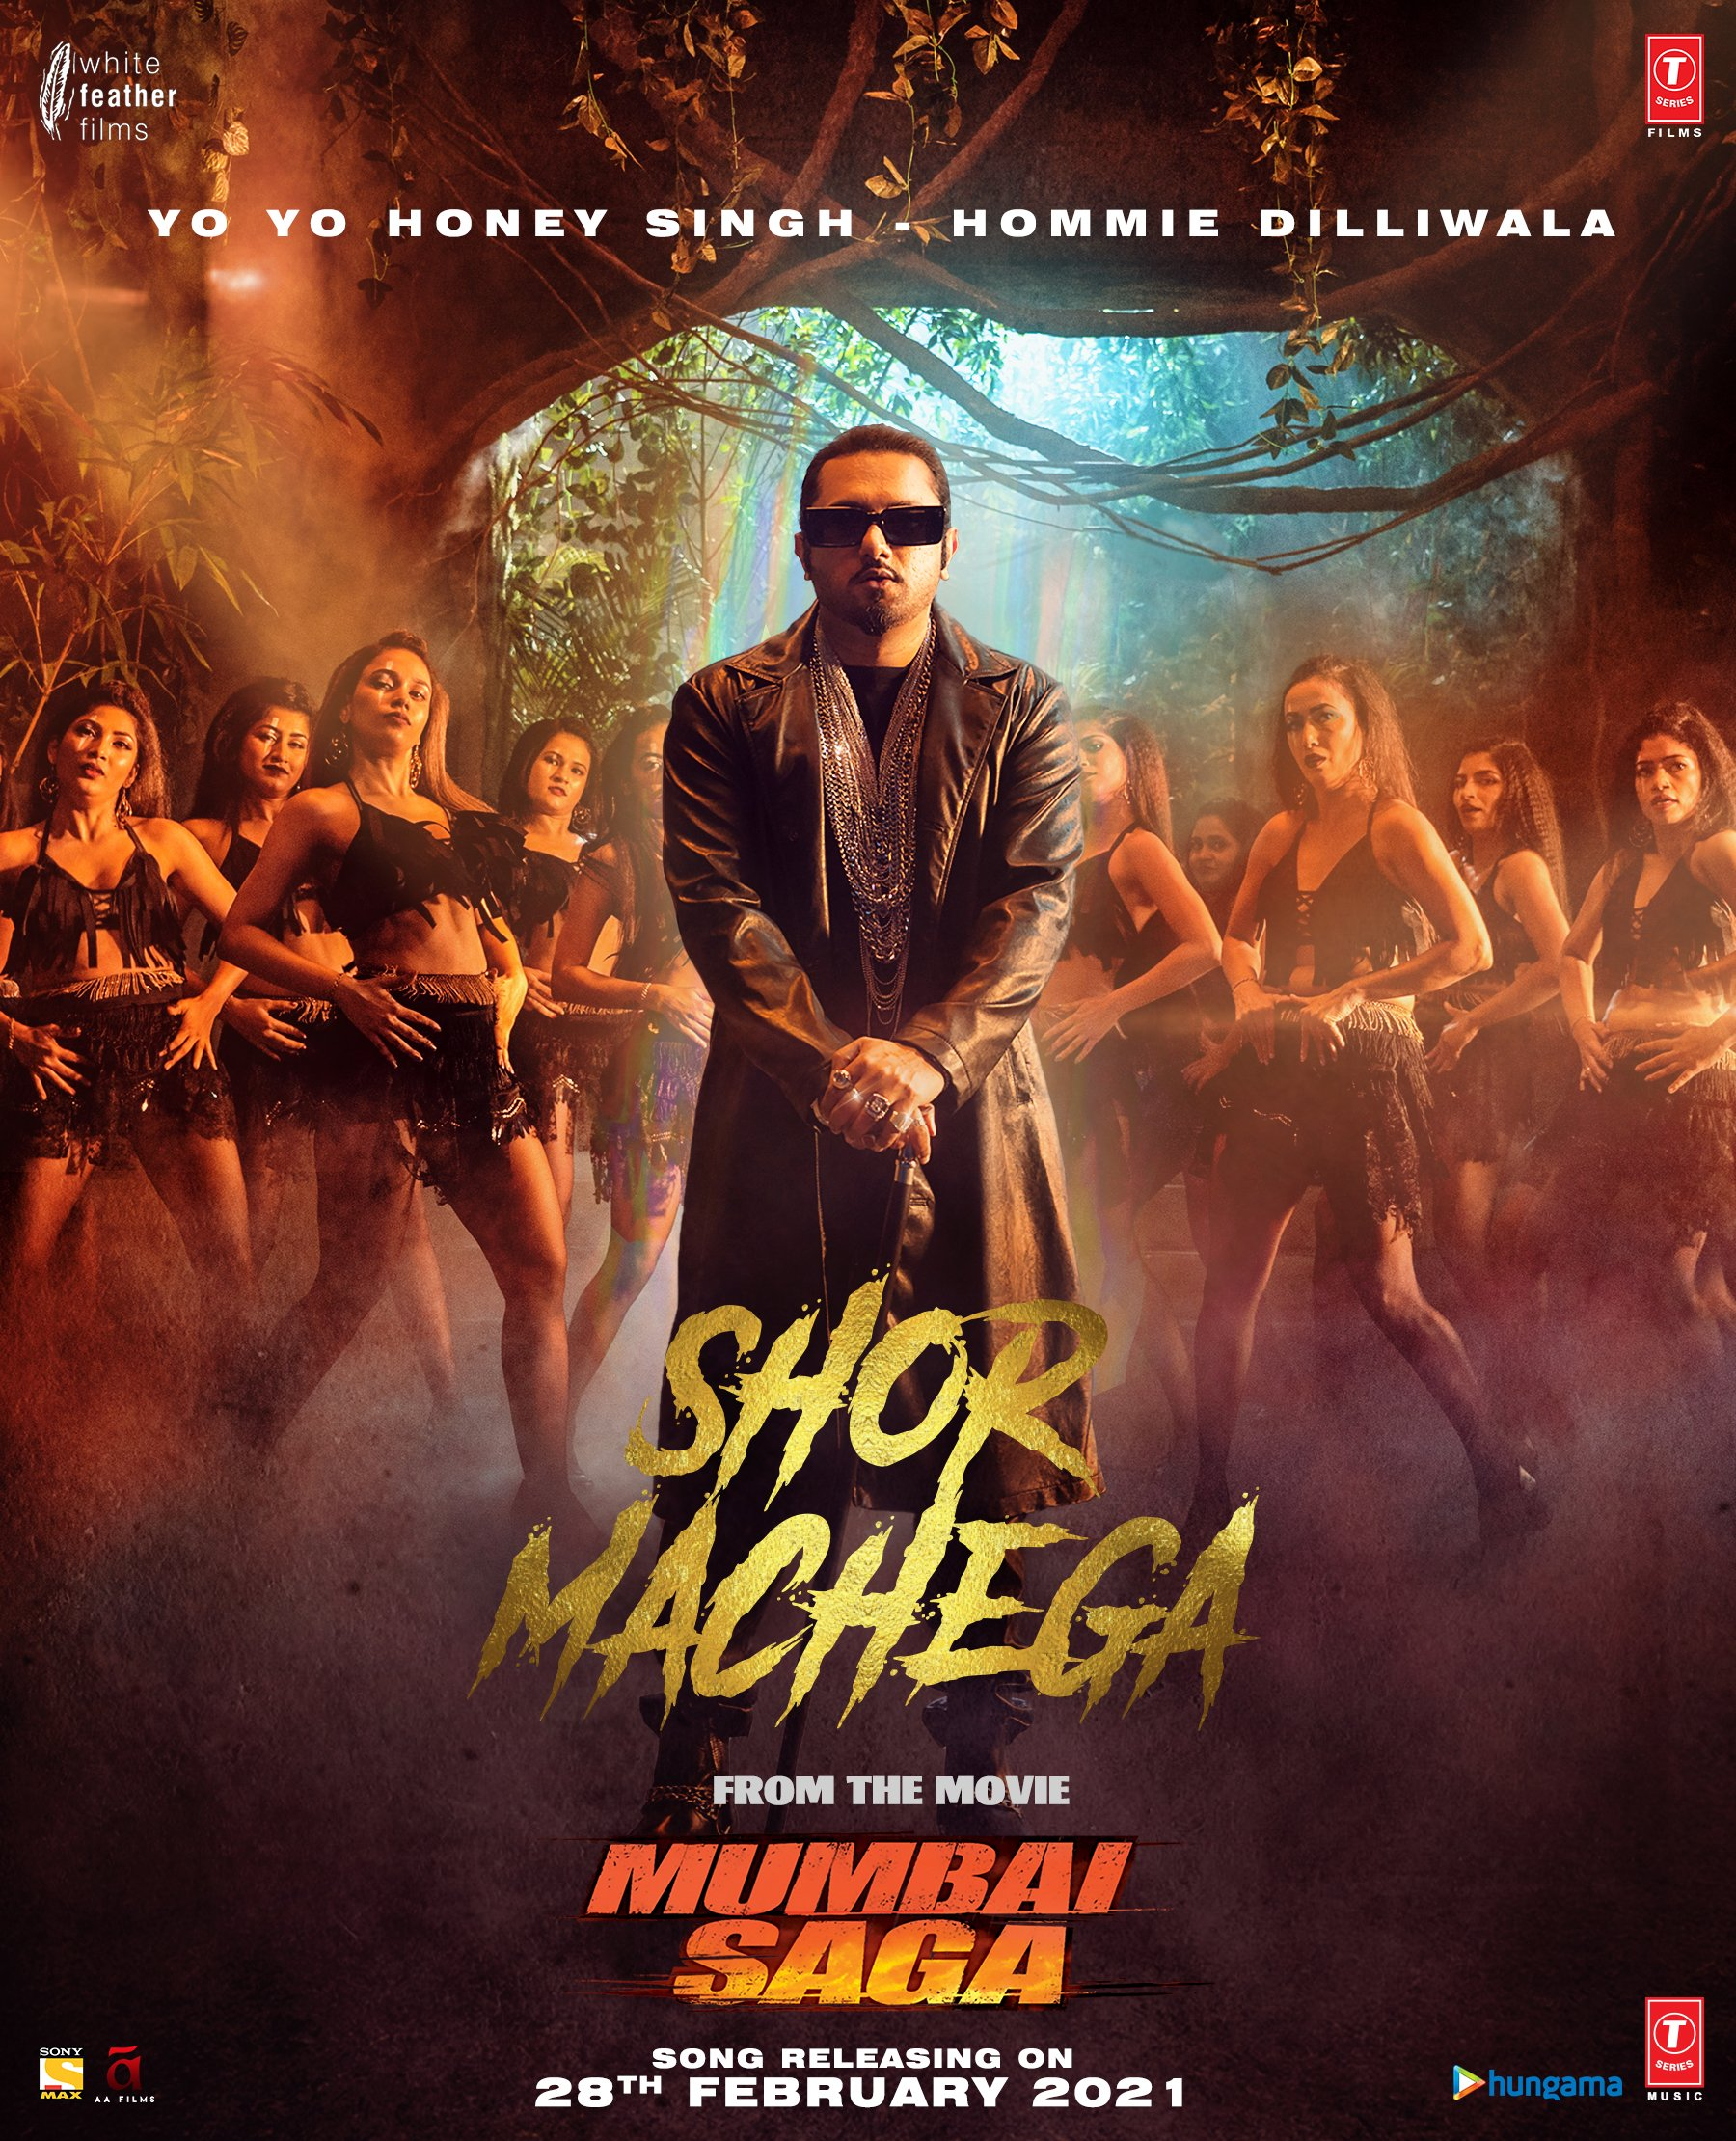 Shor Machega (Mumbai Saga) 2021 By Yo Yo Honey Singh Hindi Video Song 1080p HDRip 100MB Download